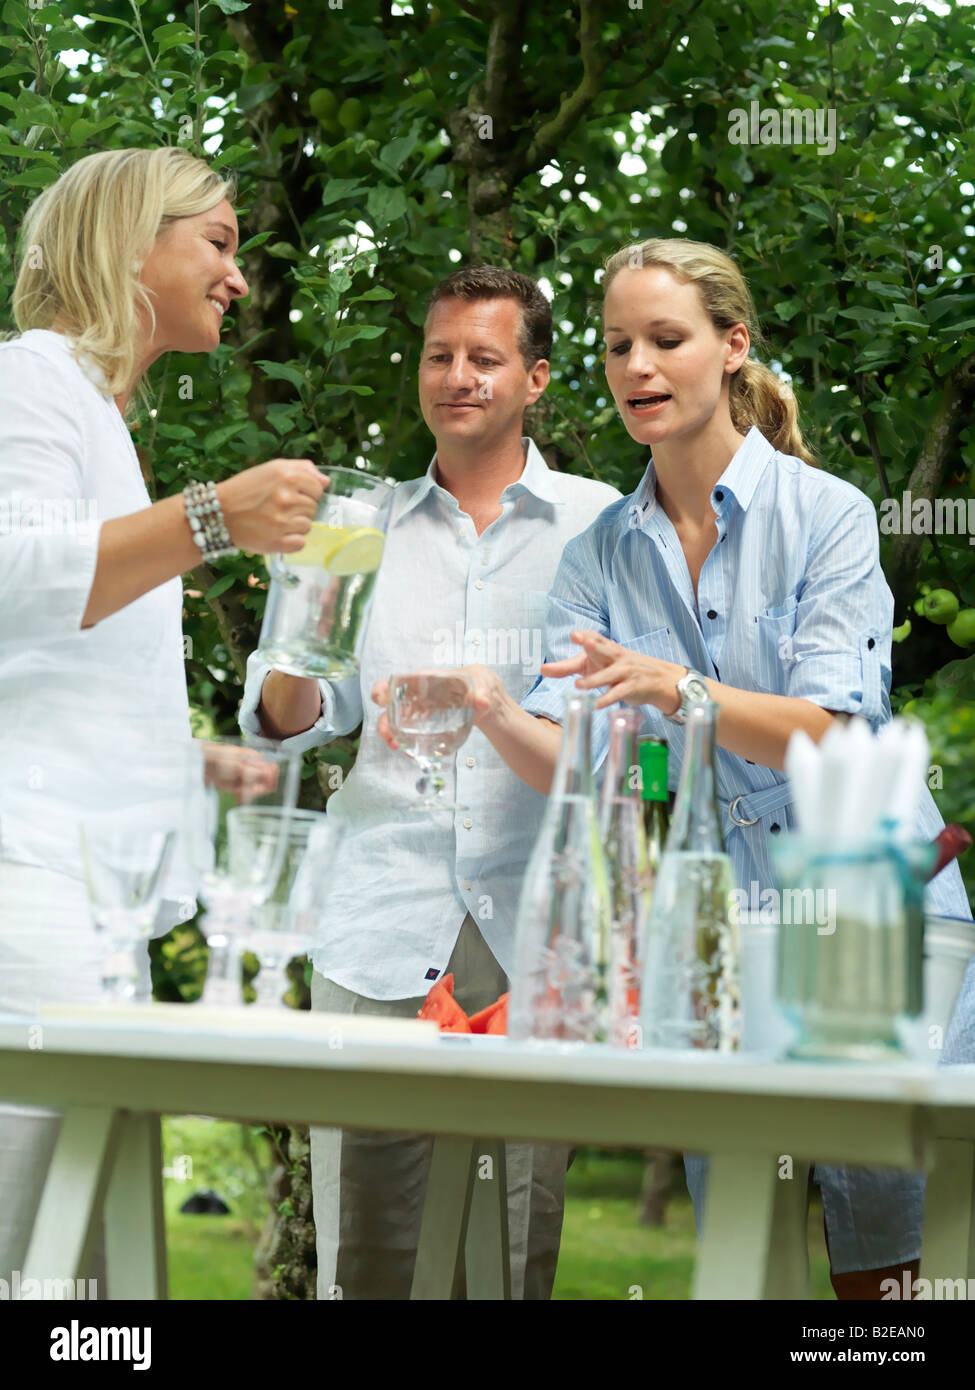 Low angle view of woman serving water to her friend - Stock Image